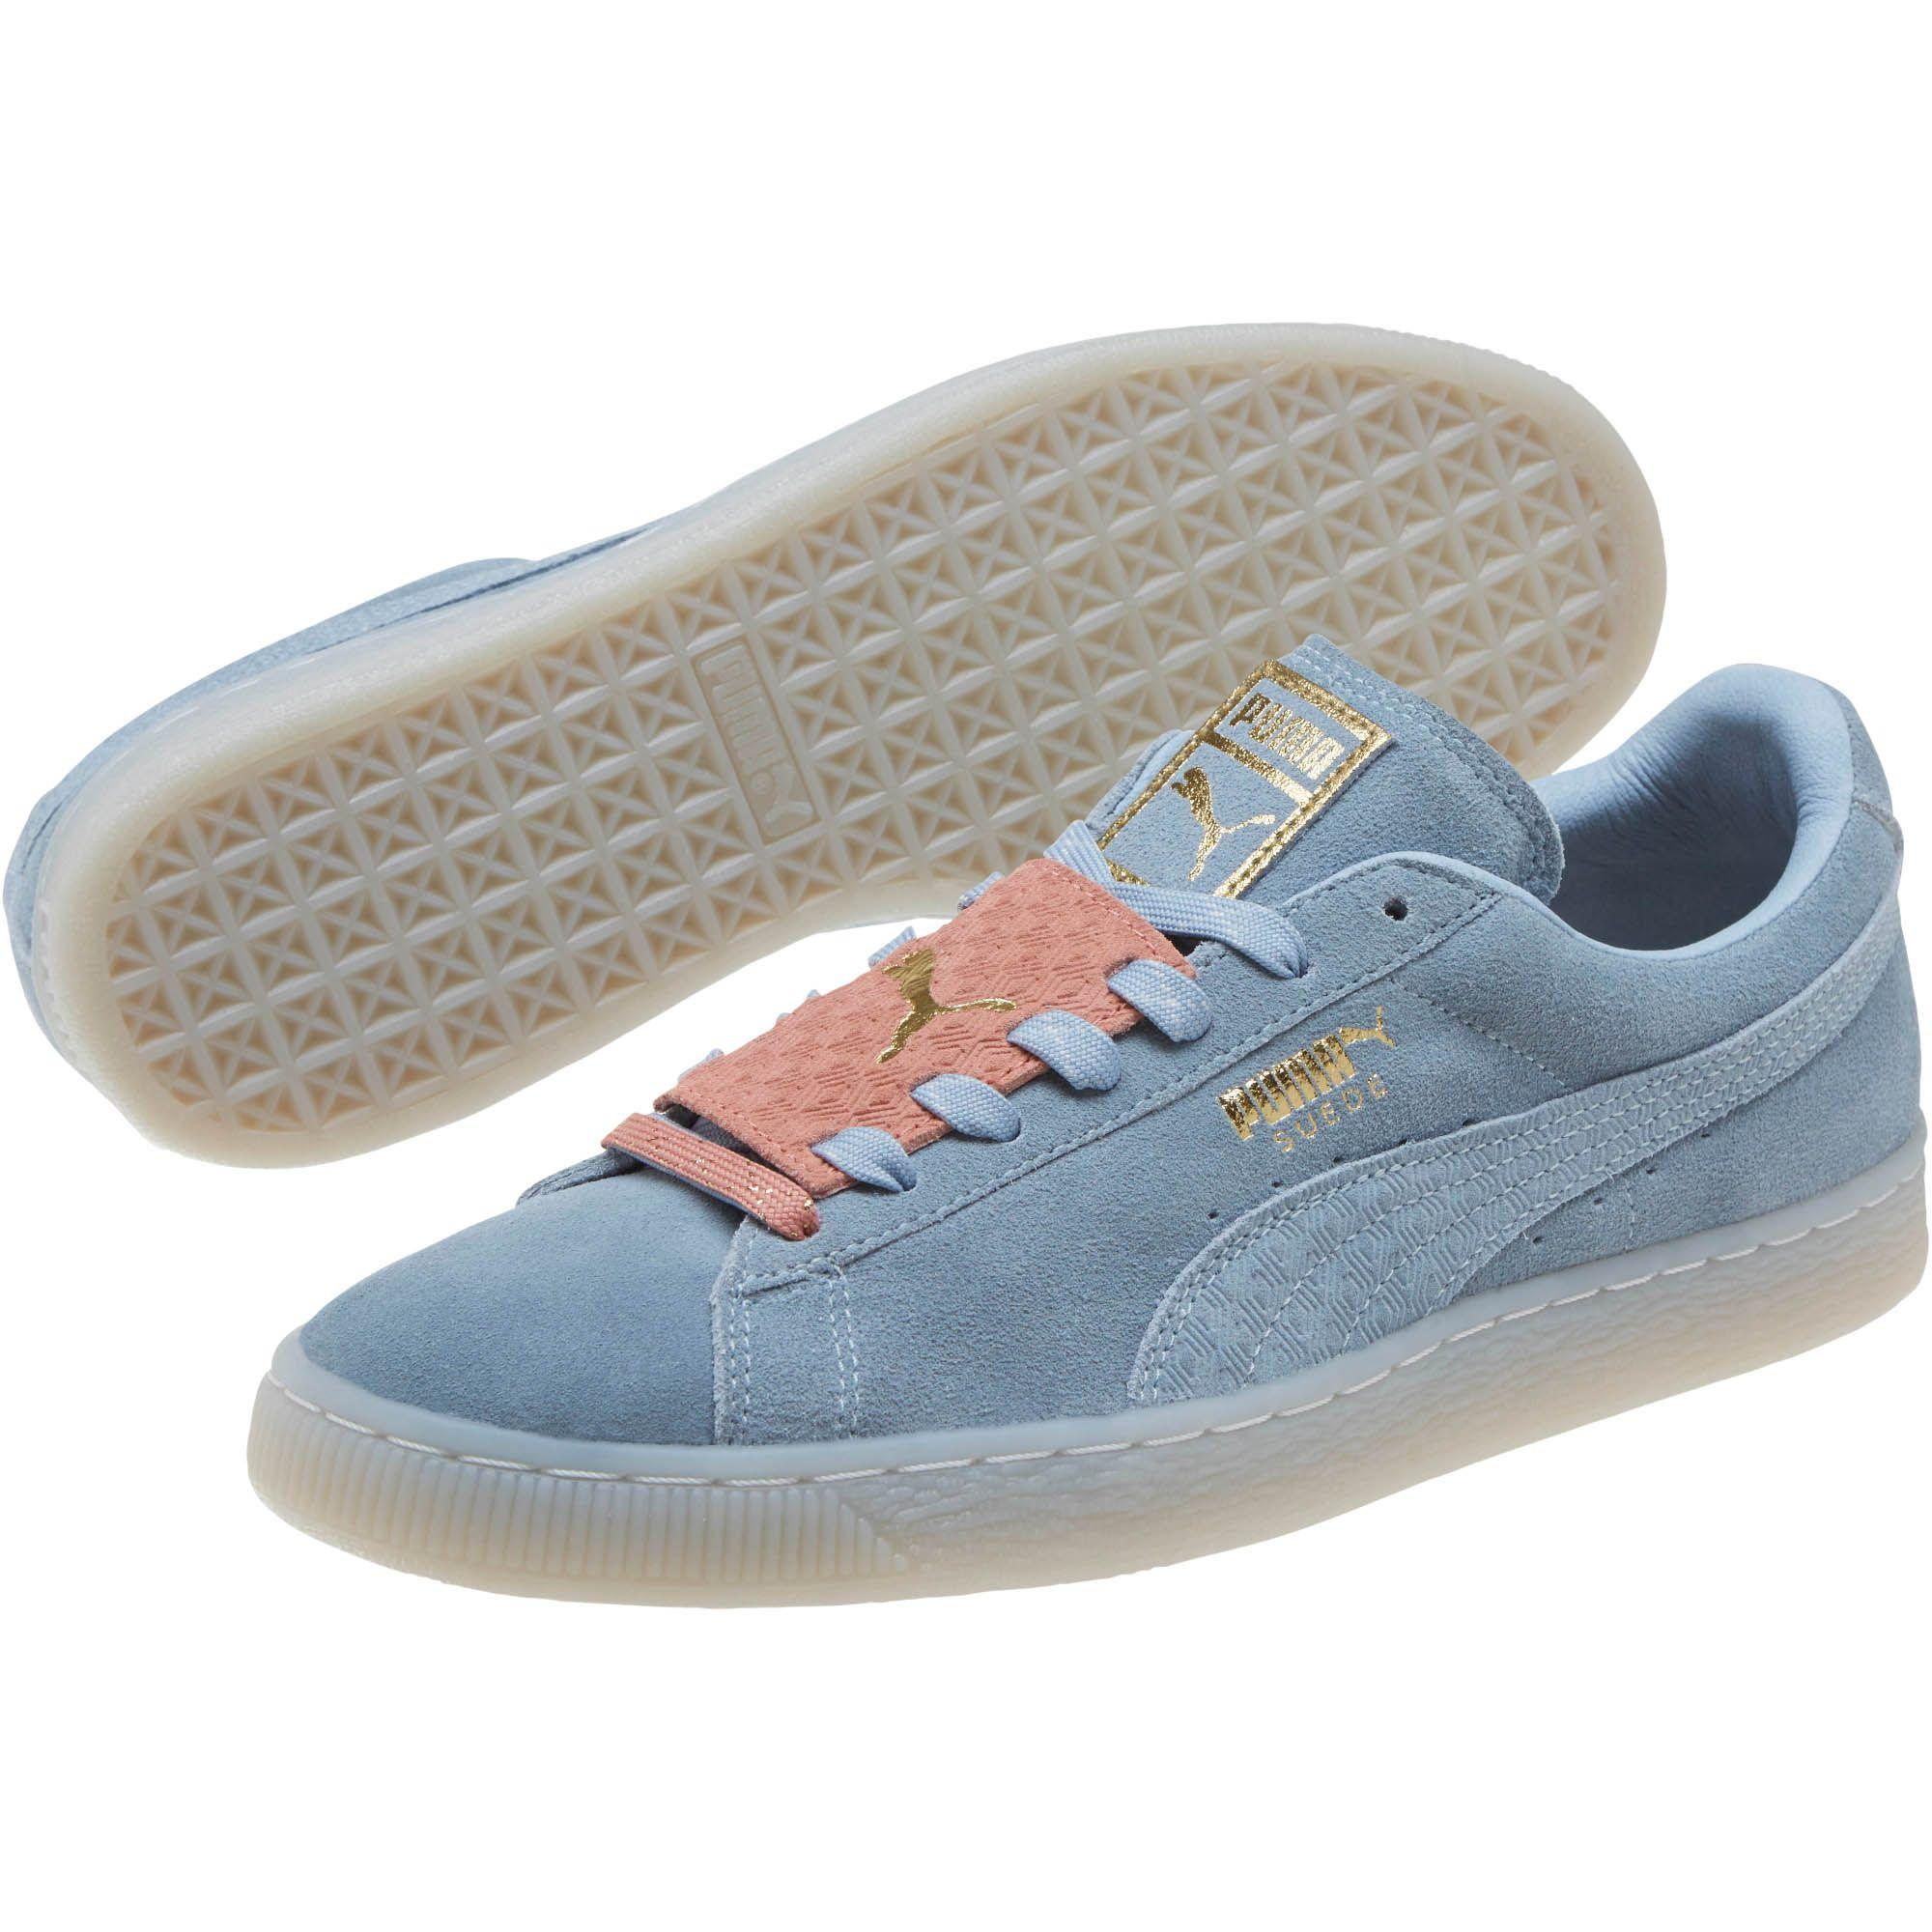 0ccb6732f725 Lyst - PUMA Suede Epic Remix Men s Sneakers in Blue for Men